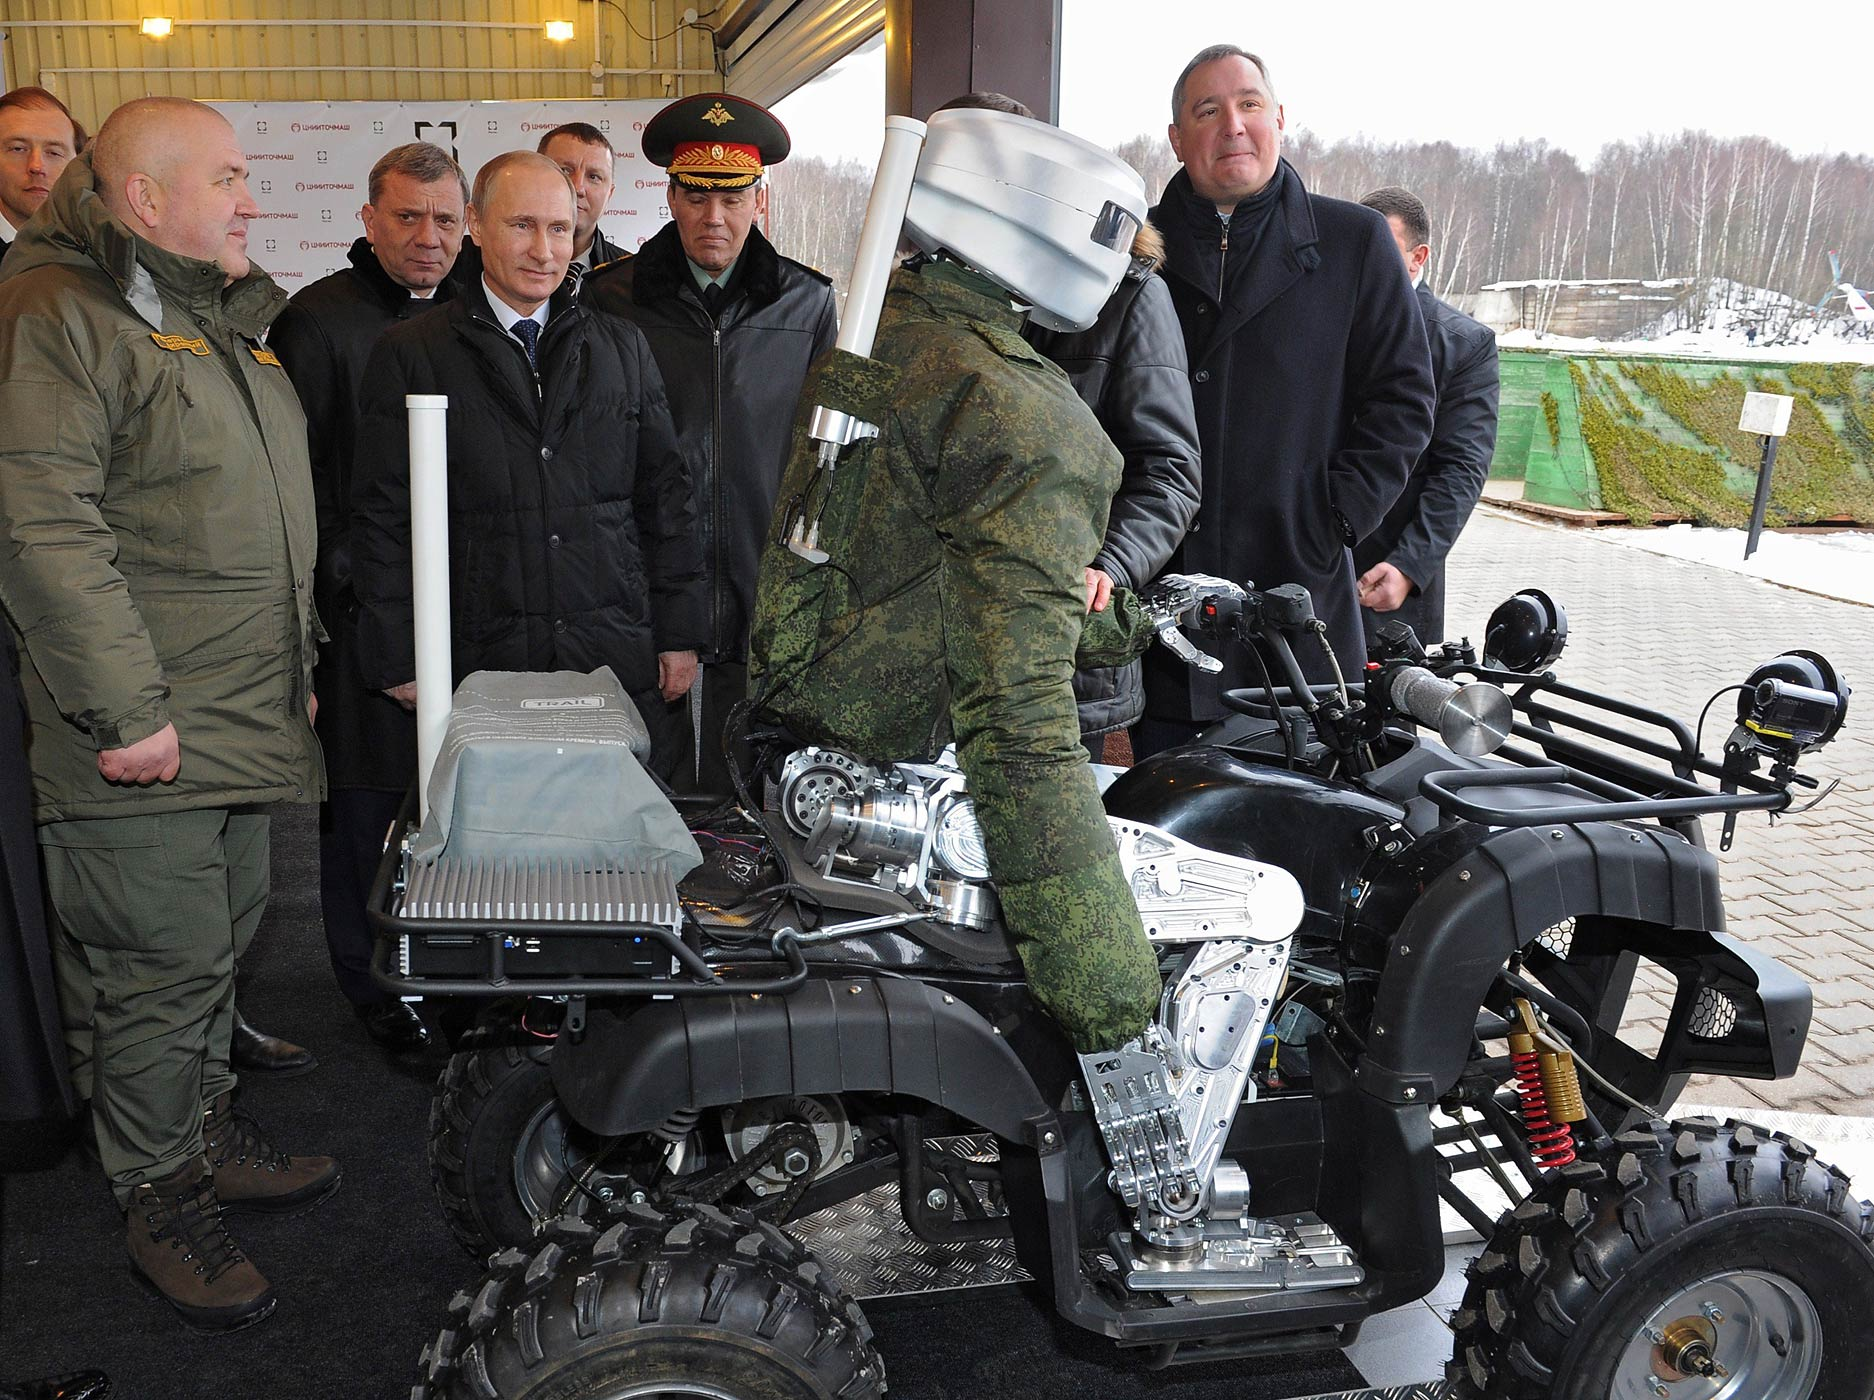 Russian President Vladimir Putin examines a Russian made android robot during his visits to the Central Scientific Research Institute of Precise Mechanical Engineering in Klimovsk, Russia on Jan. 20, 2015.